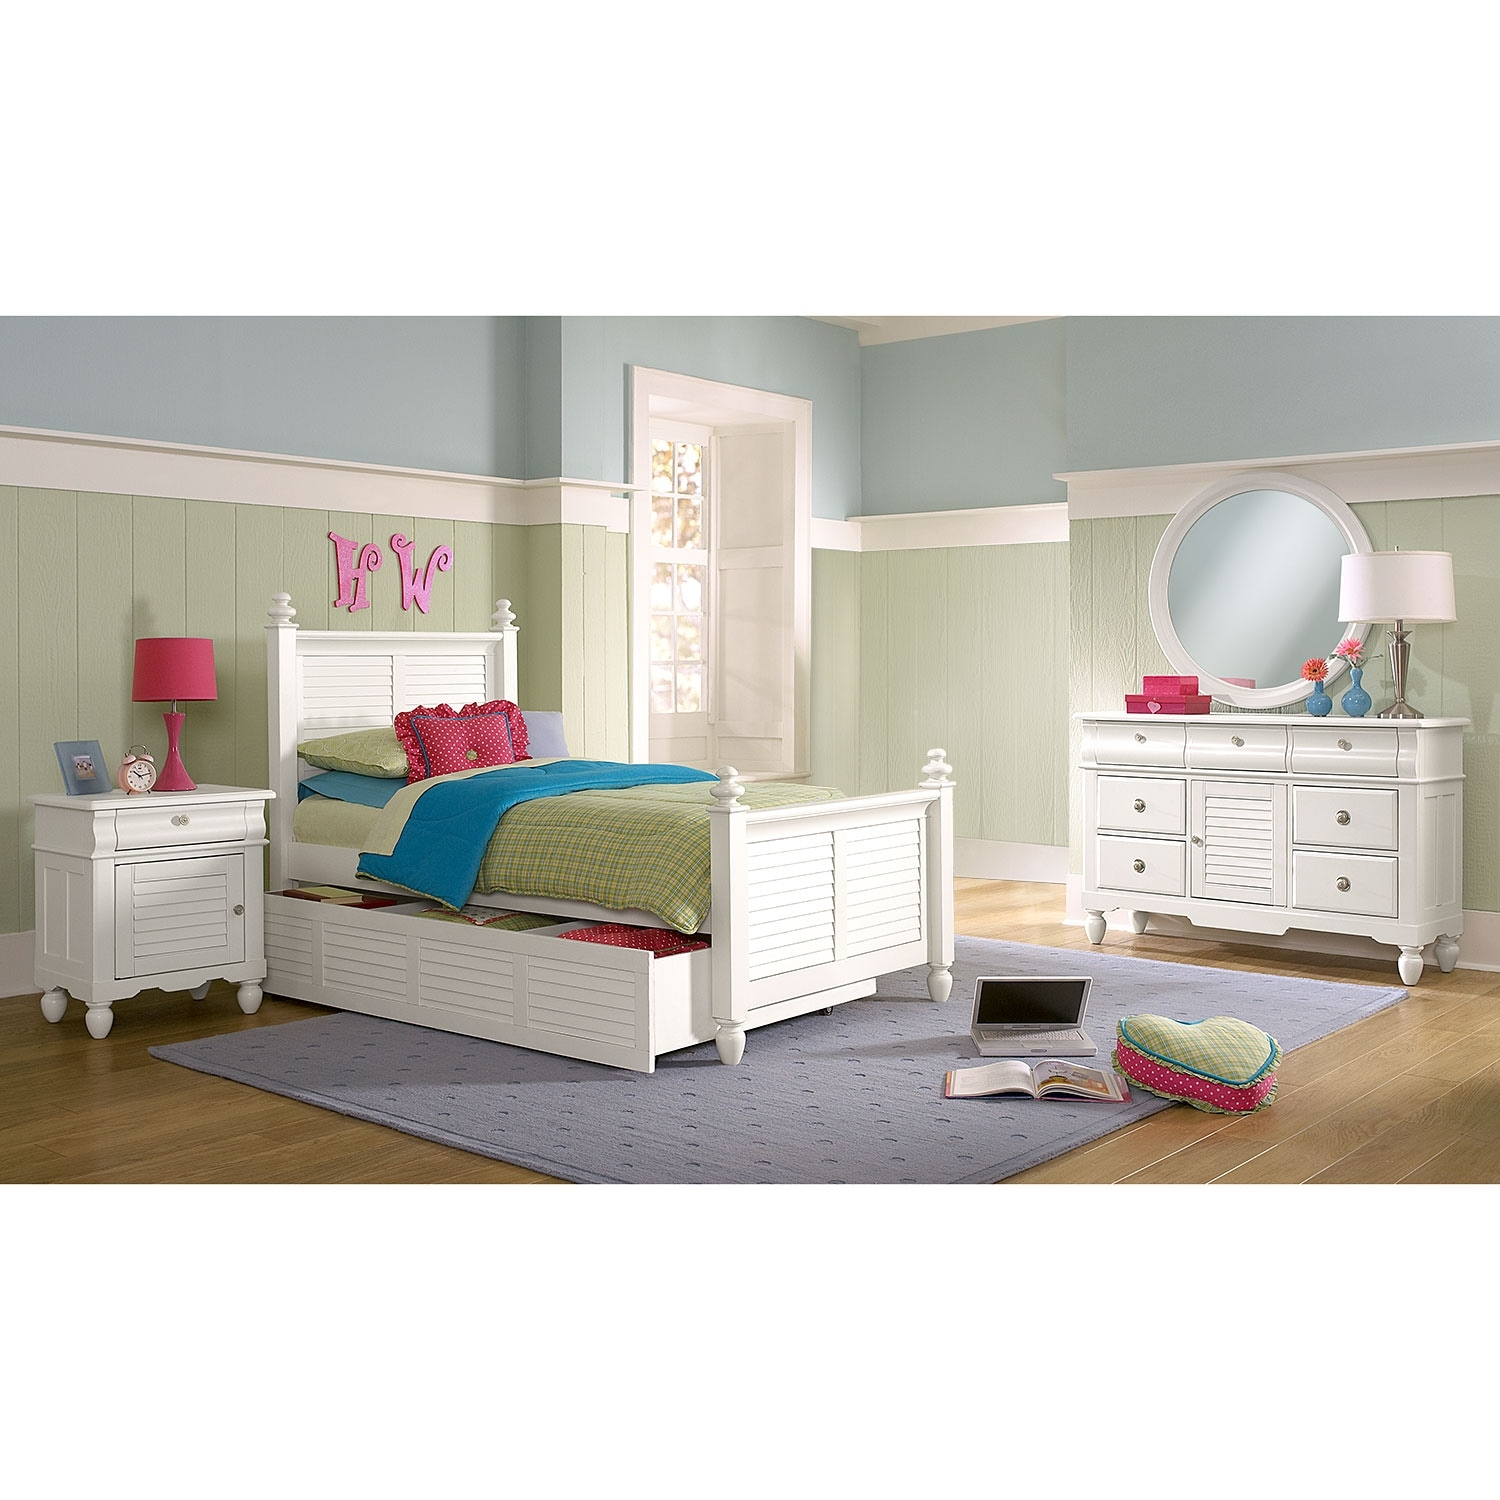 Seaside 7 piece twin bedroom set with trundle white american signature furniture White twin trundle bedroom set